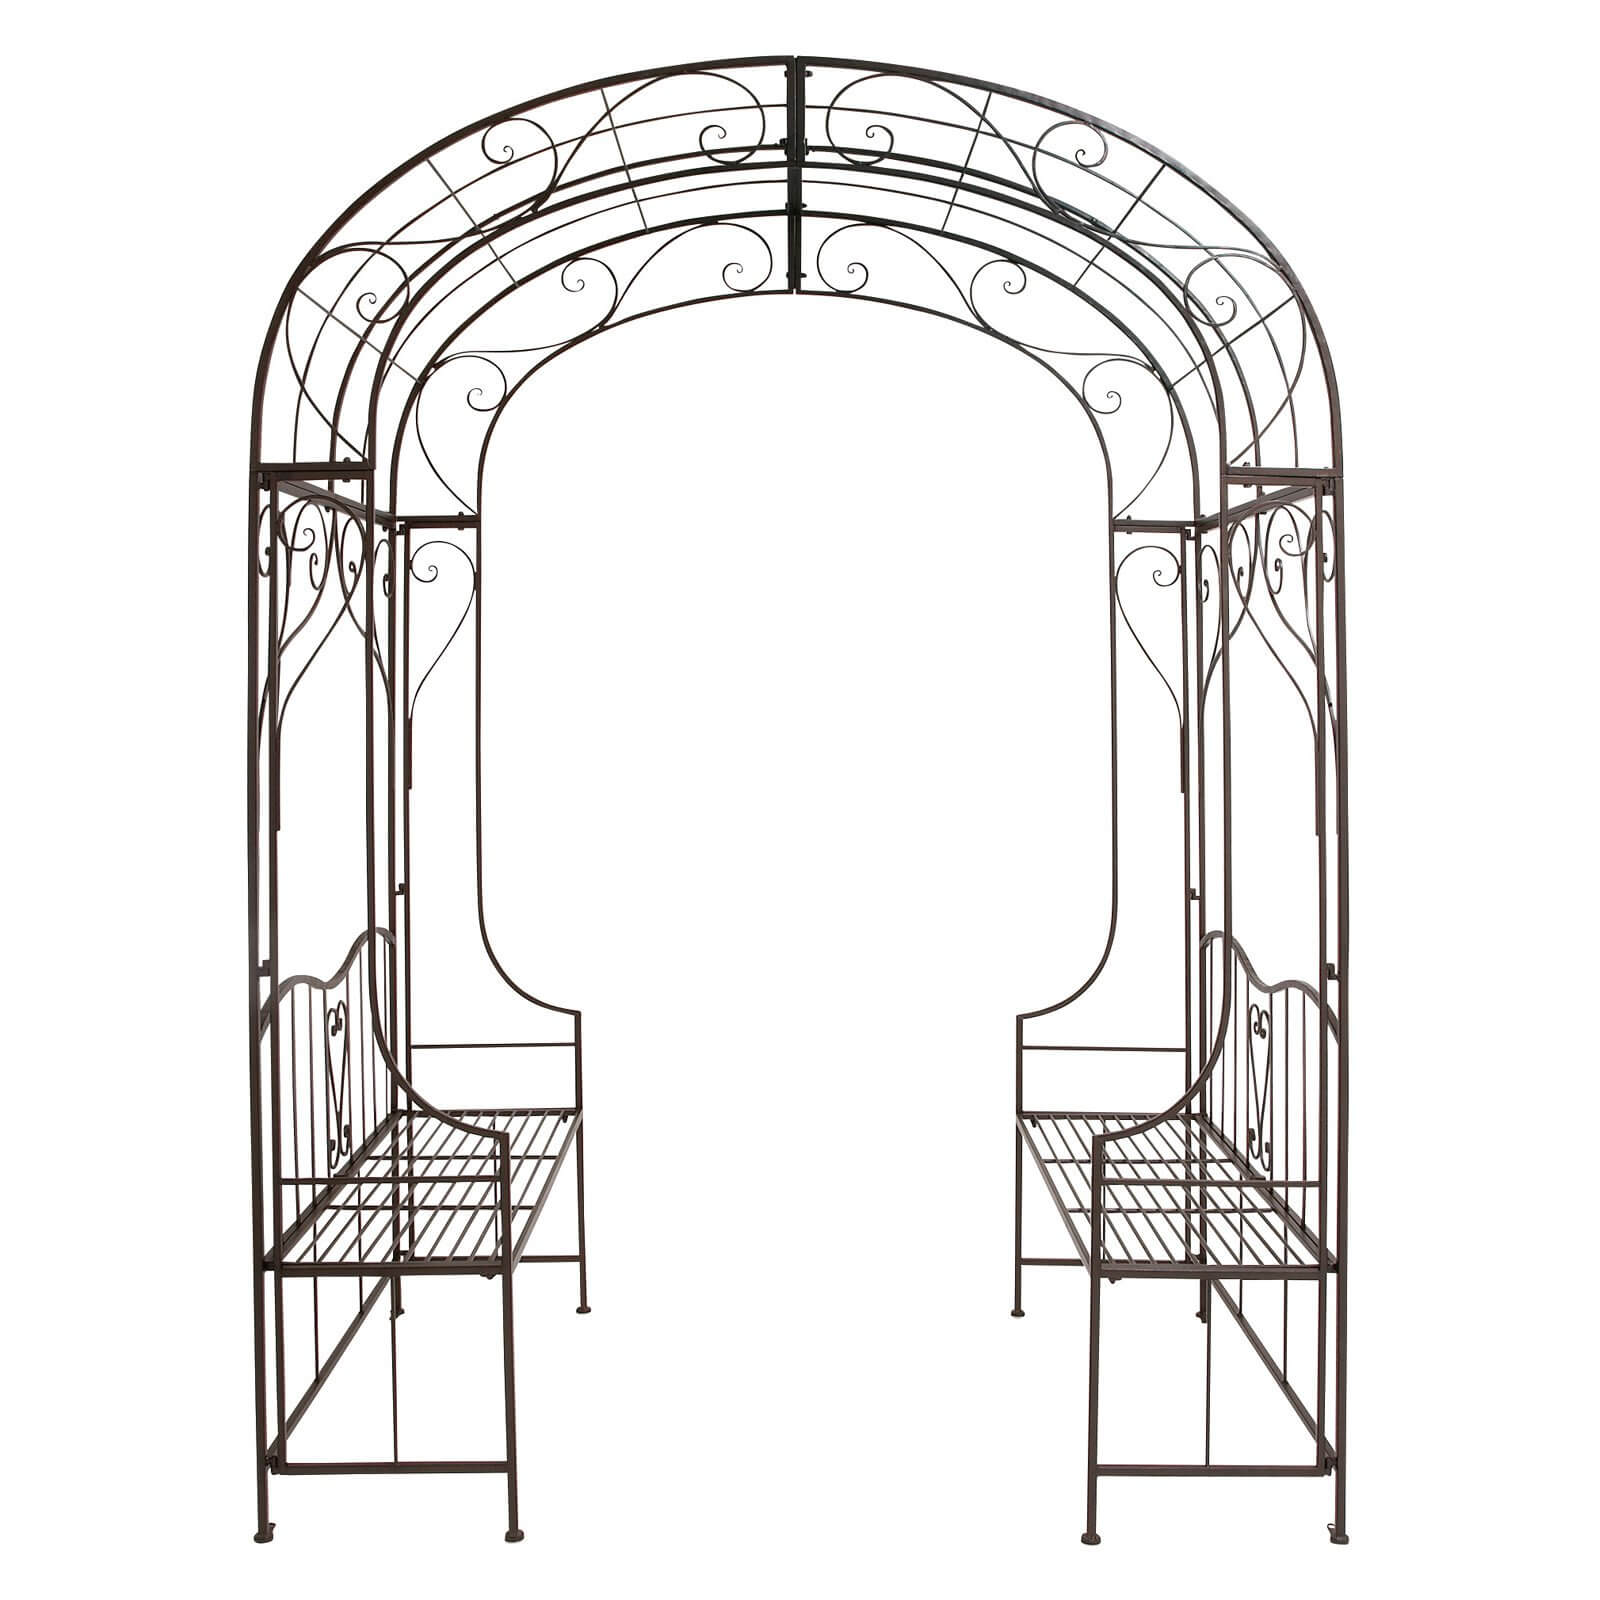 Arch Arbor with Bench